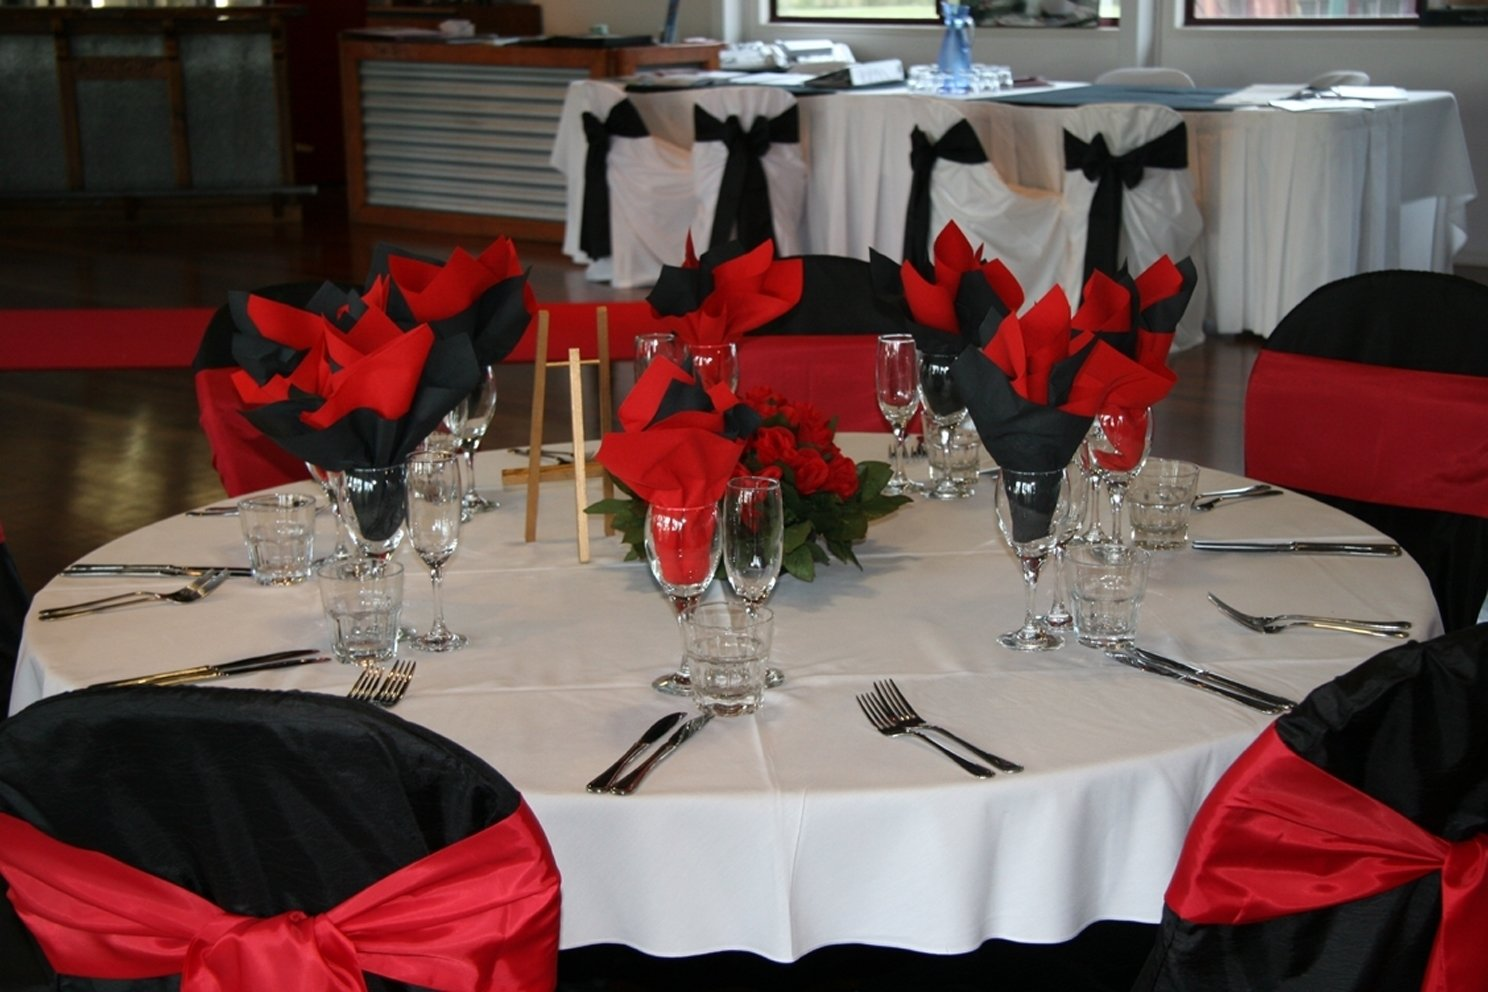 10 Perfect Red White And Black Wedding Ideas wedding decorations red and white wedding ideas uxjj 2 2020